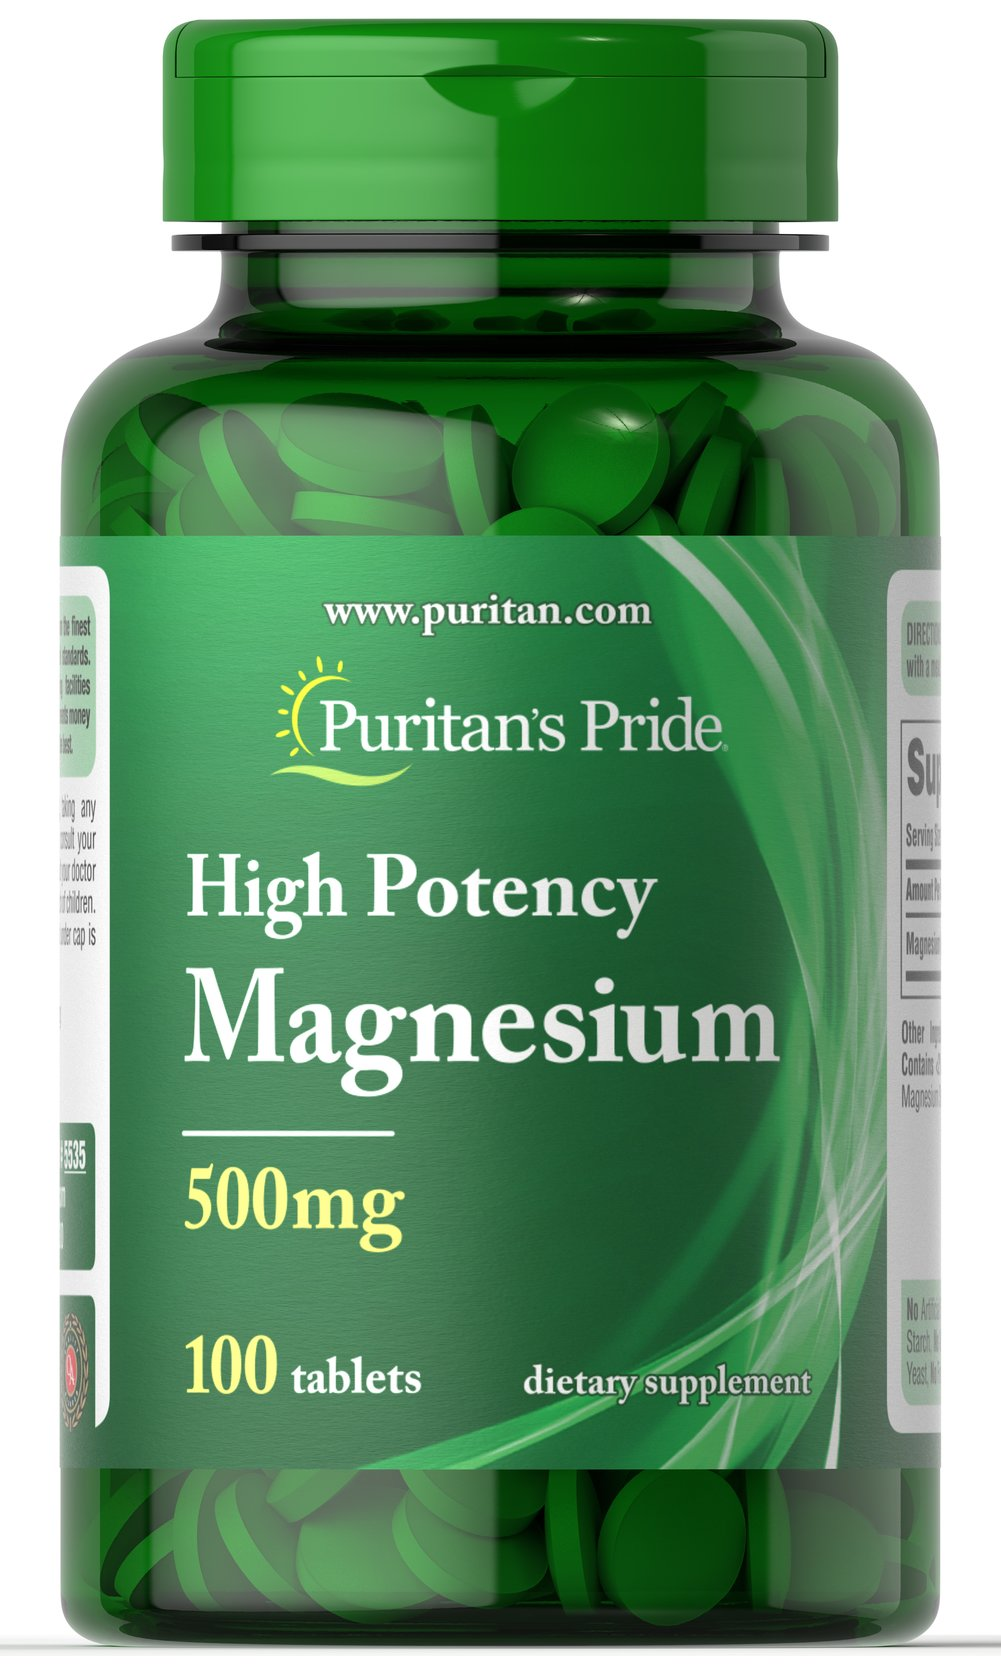 Magnesium 500 mg <p>Magnesium offers another option, besides Calcium, for supporting bone health.** Magnesium plays an essential role in maintaining bone mineralization, and is also involved in muscle contractions and nerve impulses.** Adults can take one caplet daily with a meal.</p> 100 Tablets 500 mg $7.79